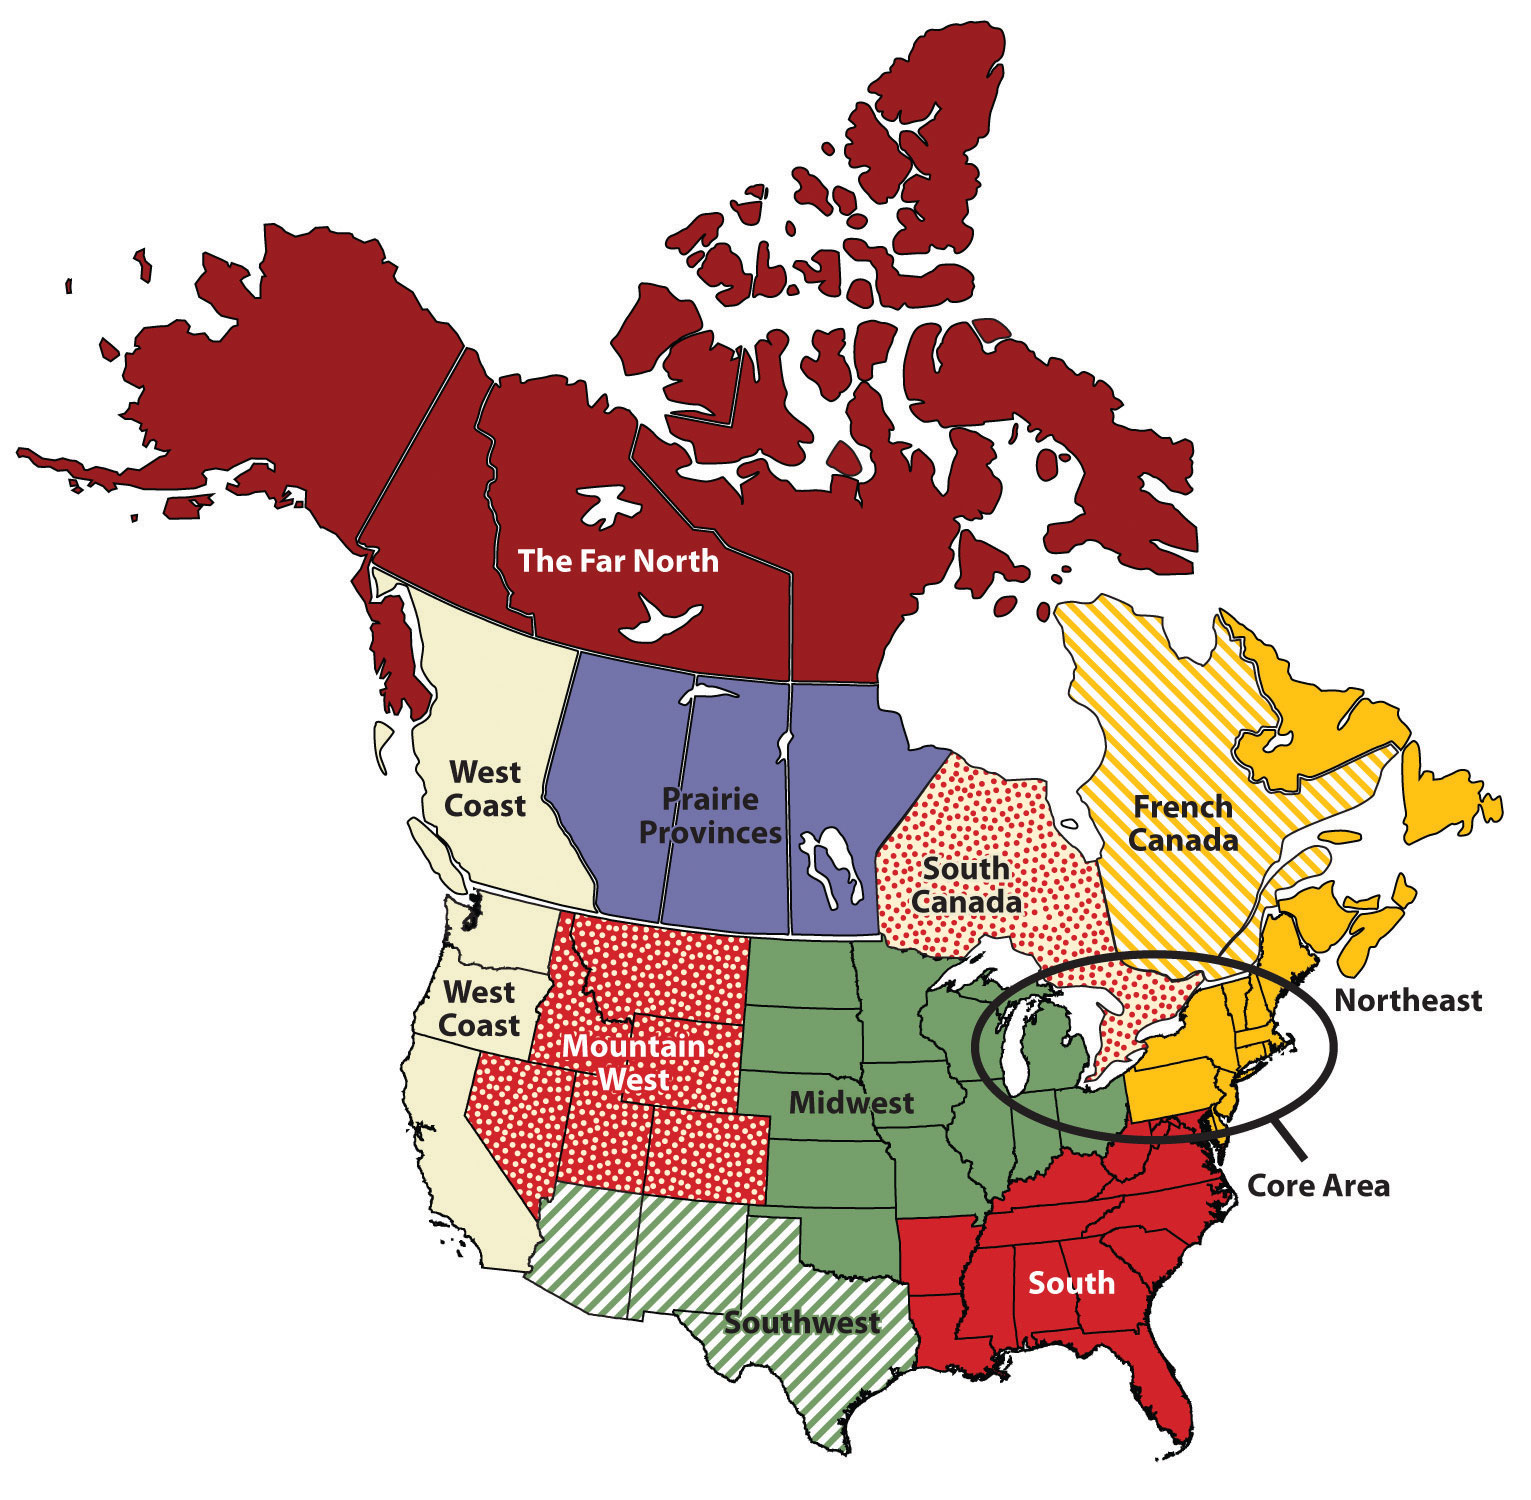 Regions of the United States and Canada